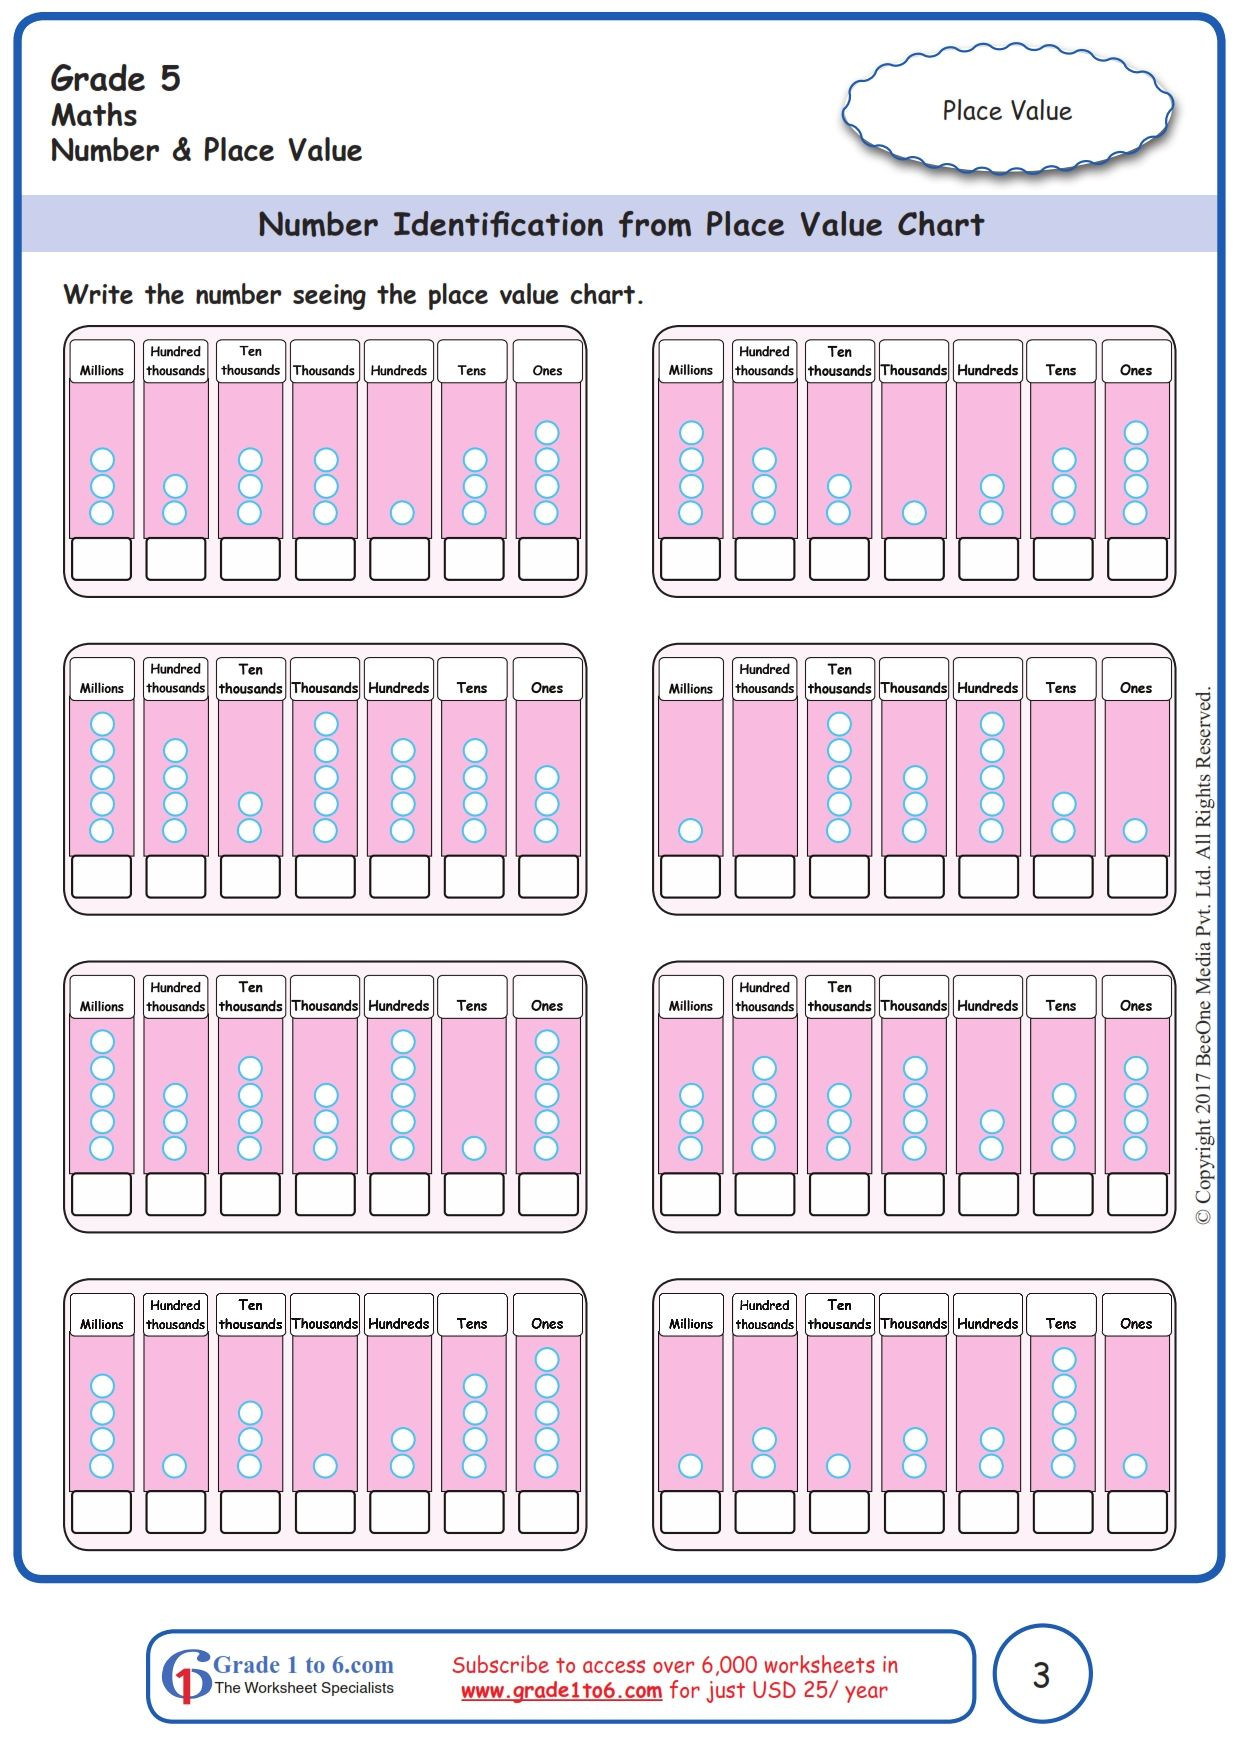 Place Value Worksheets Grade 5 Free Math Worksheets for Grade 1 Through Grade 6 Subscribe